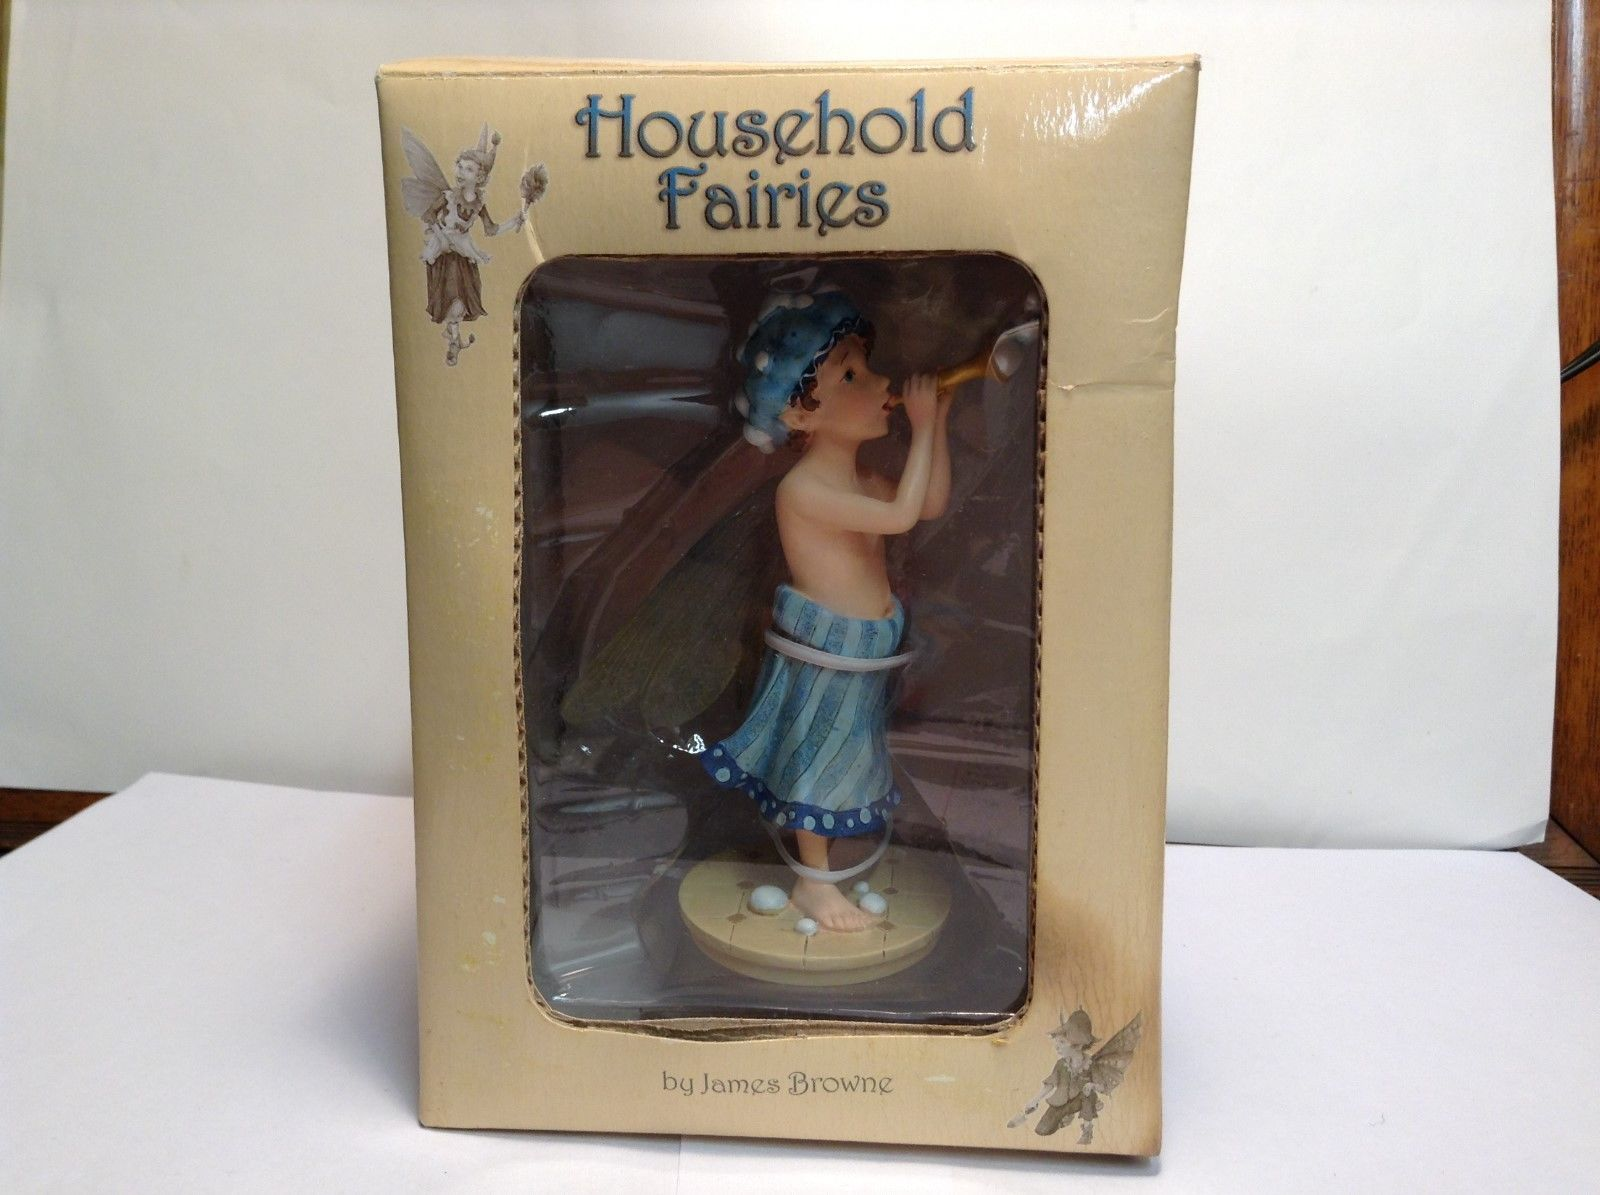 Primary image for Household Fairies Bubble Bath Boy Figurine by James Browne